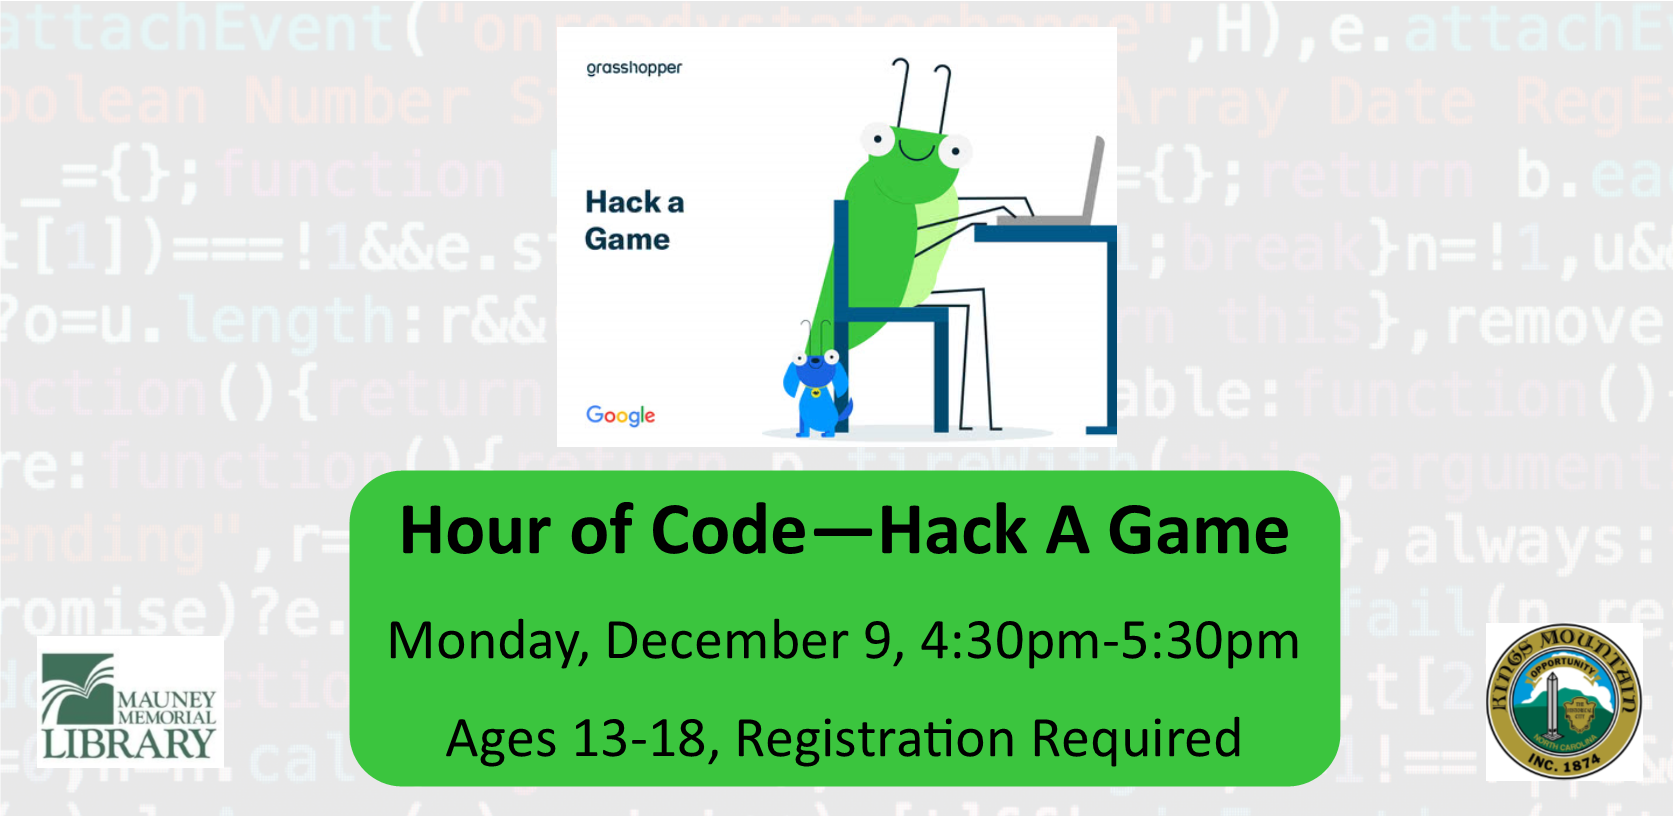 Hour of Code - Hack A Game